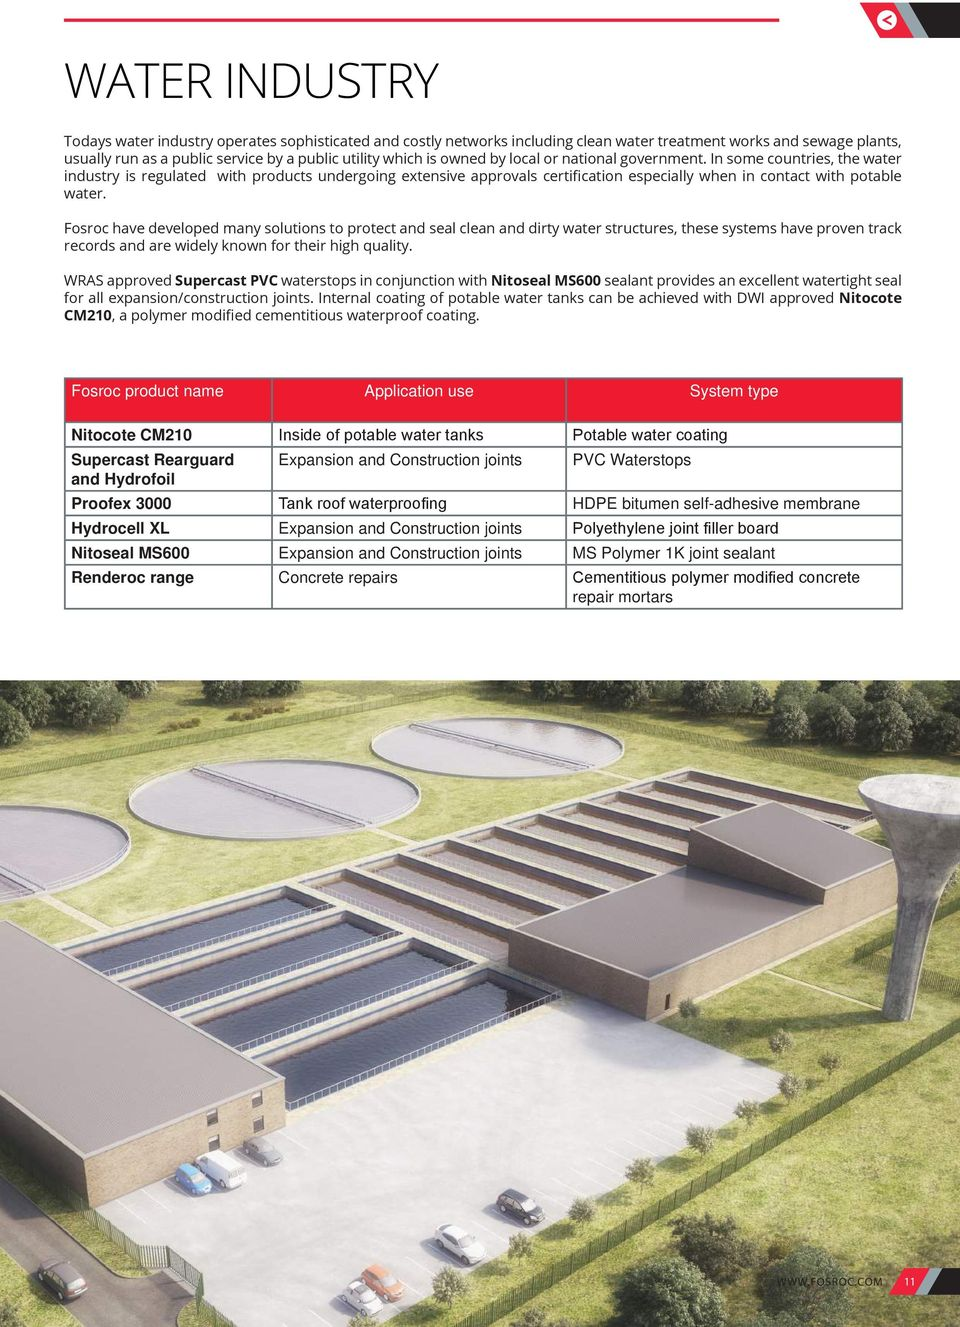 Fosroc Solutions for Waterproofing  constructive solutions - PDF